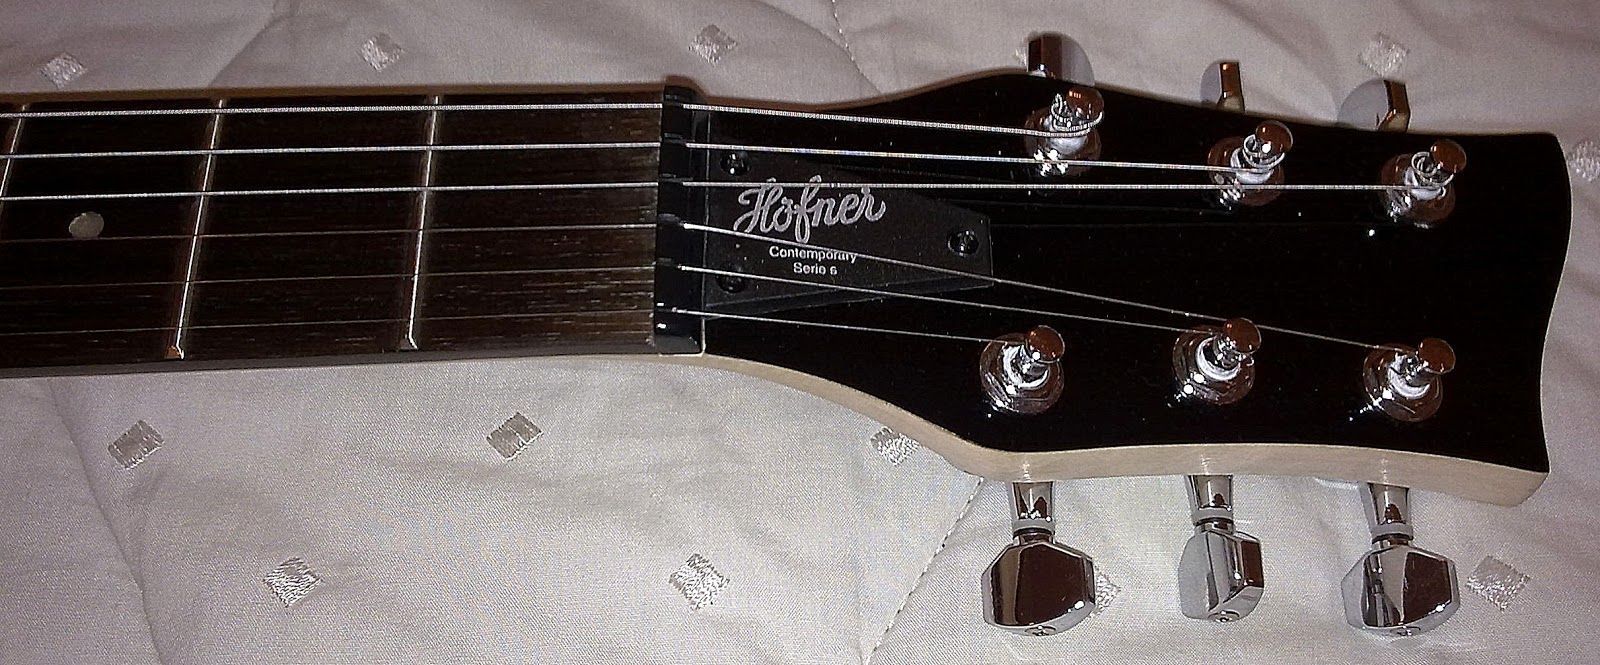 medium resolution of 0 022 f for humbucker normally 0 047 f is used for single coil pickups